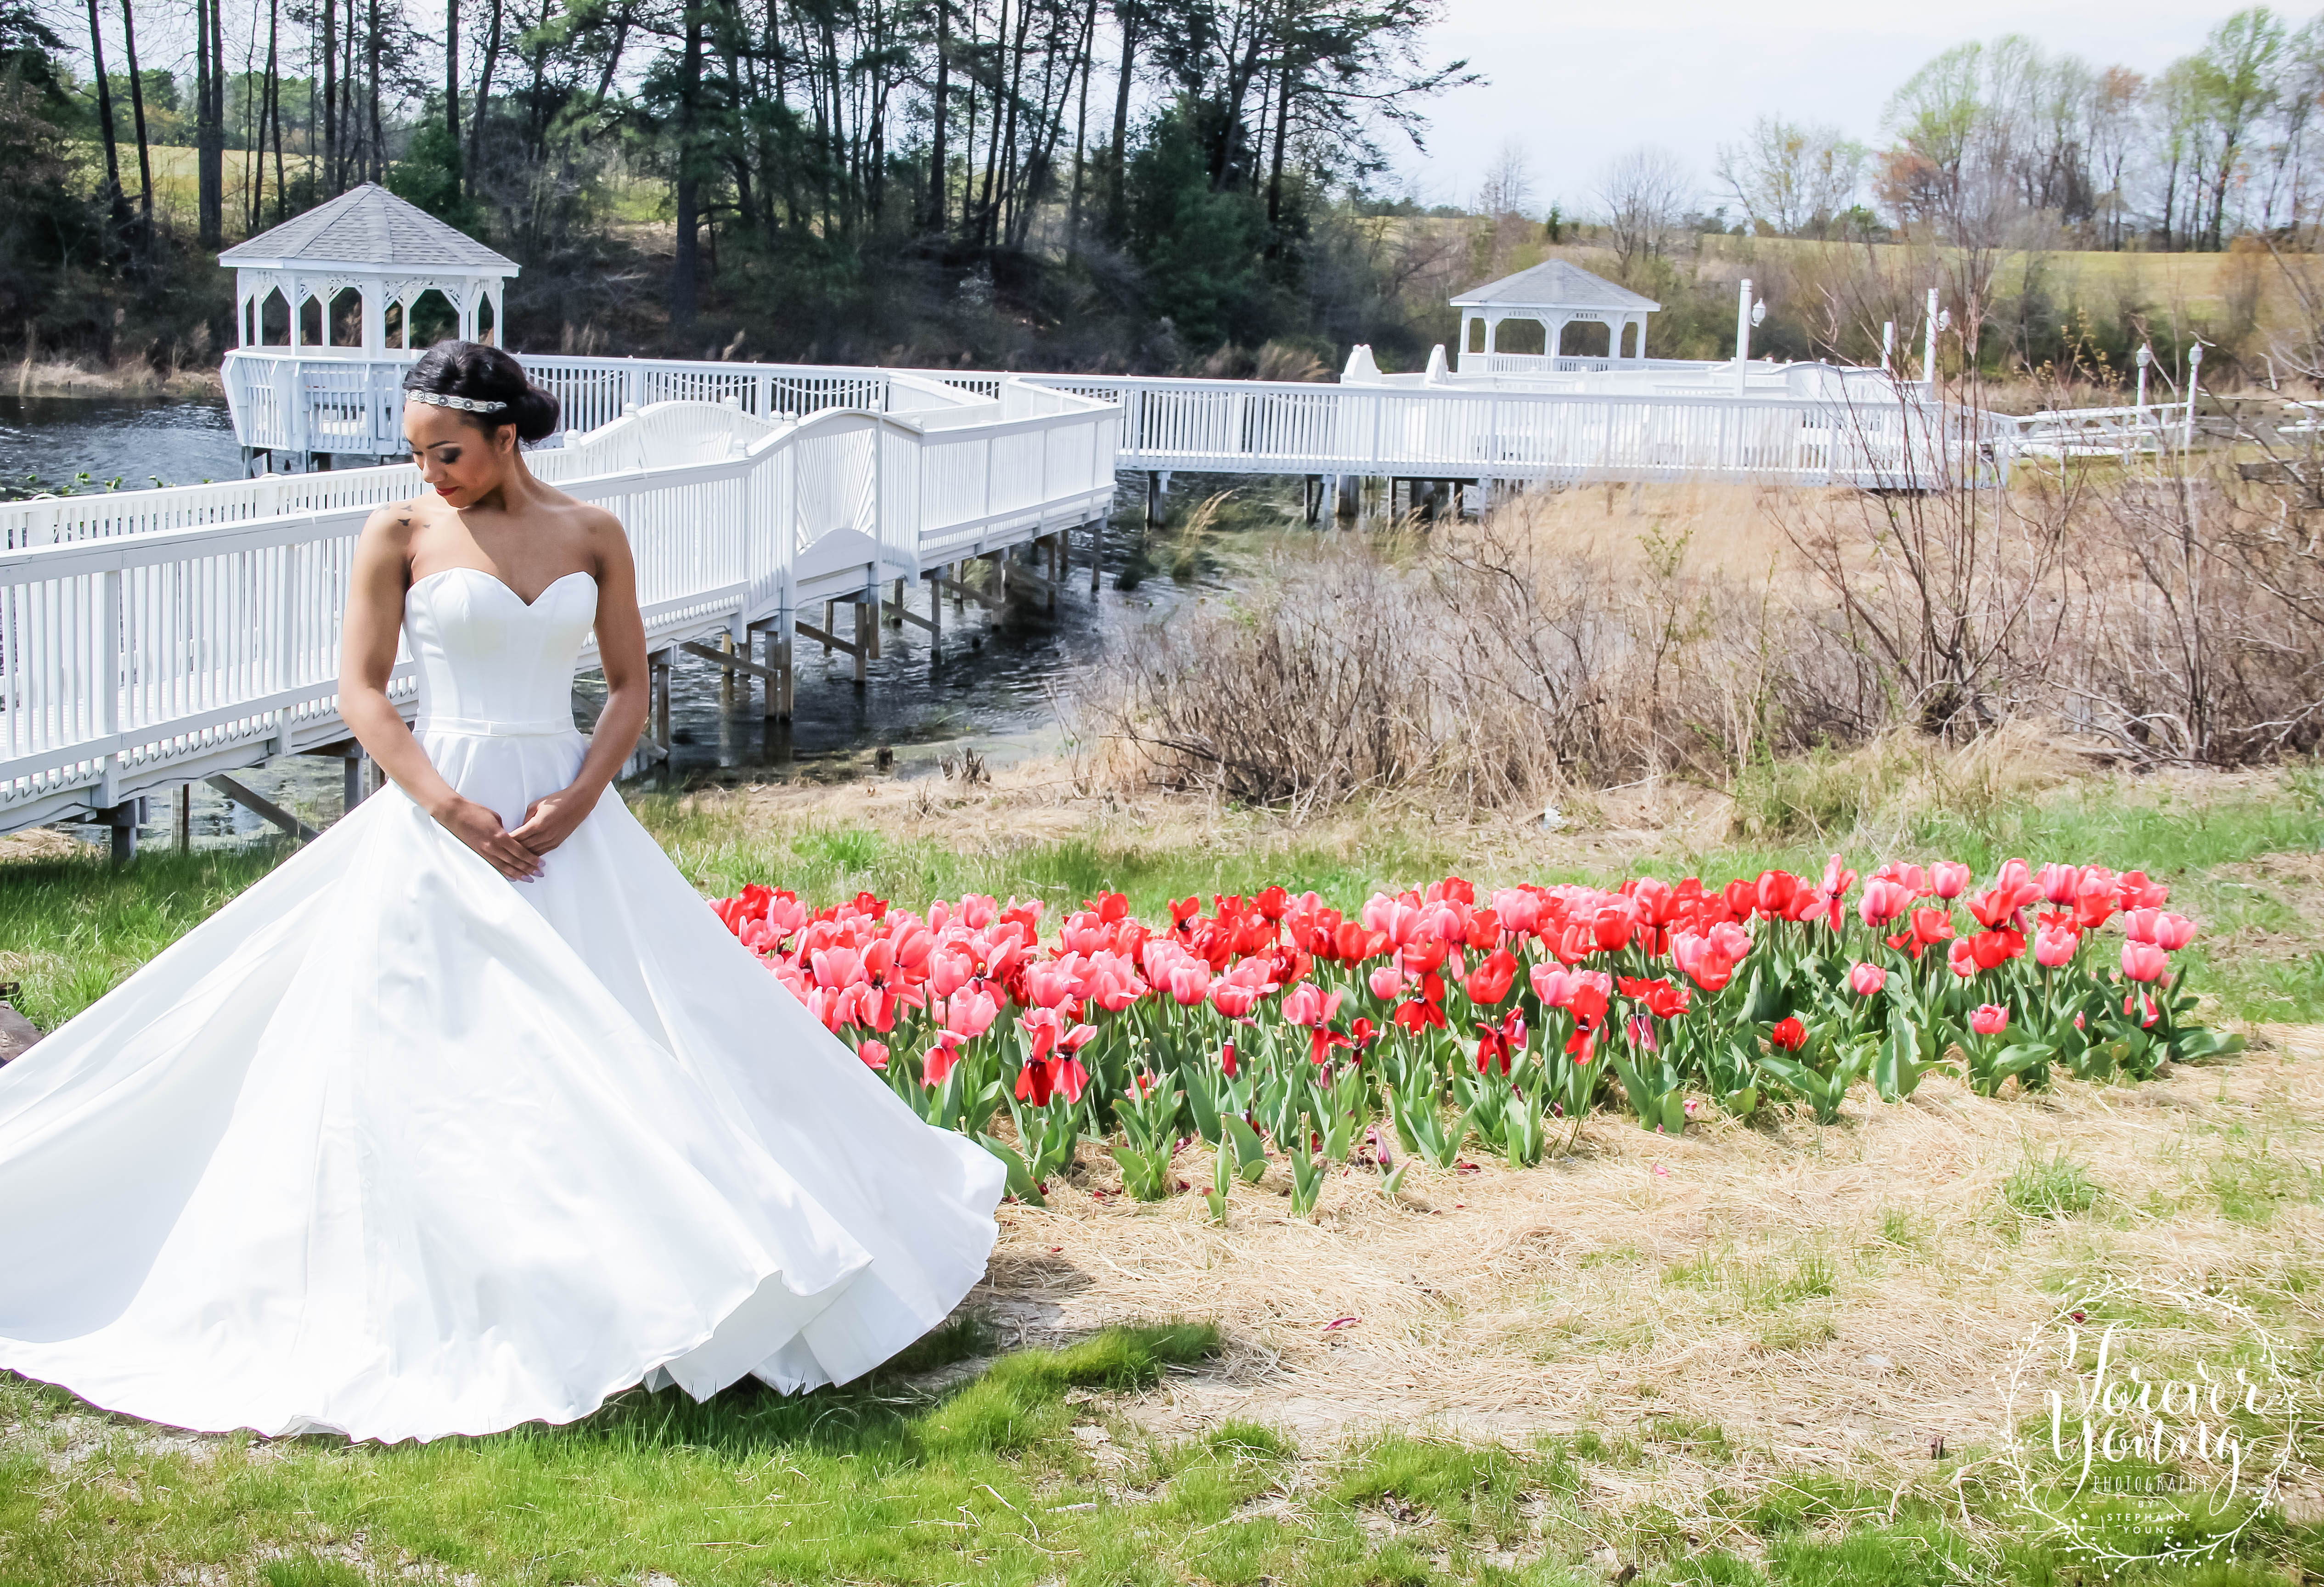 Take breathtaking wedding photos with the pier and gazebos in the background.